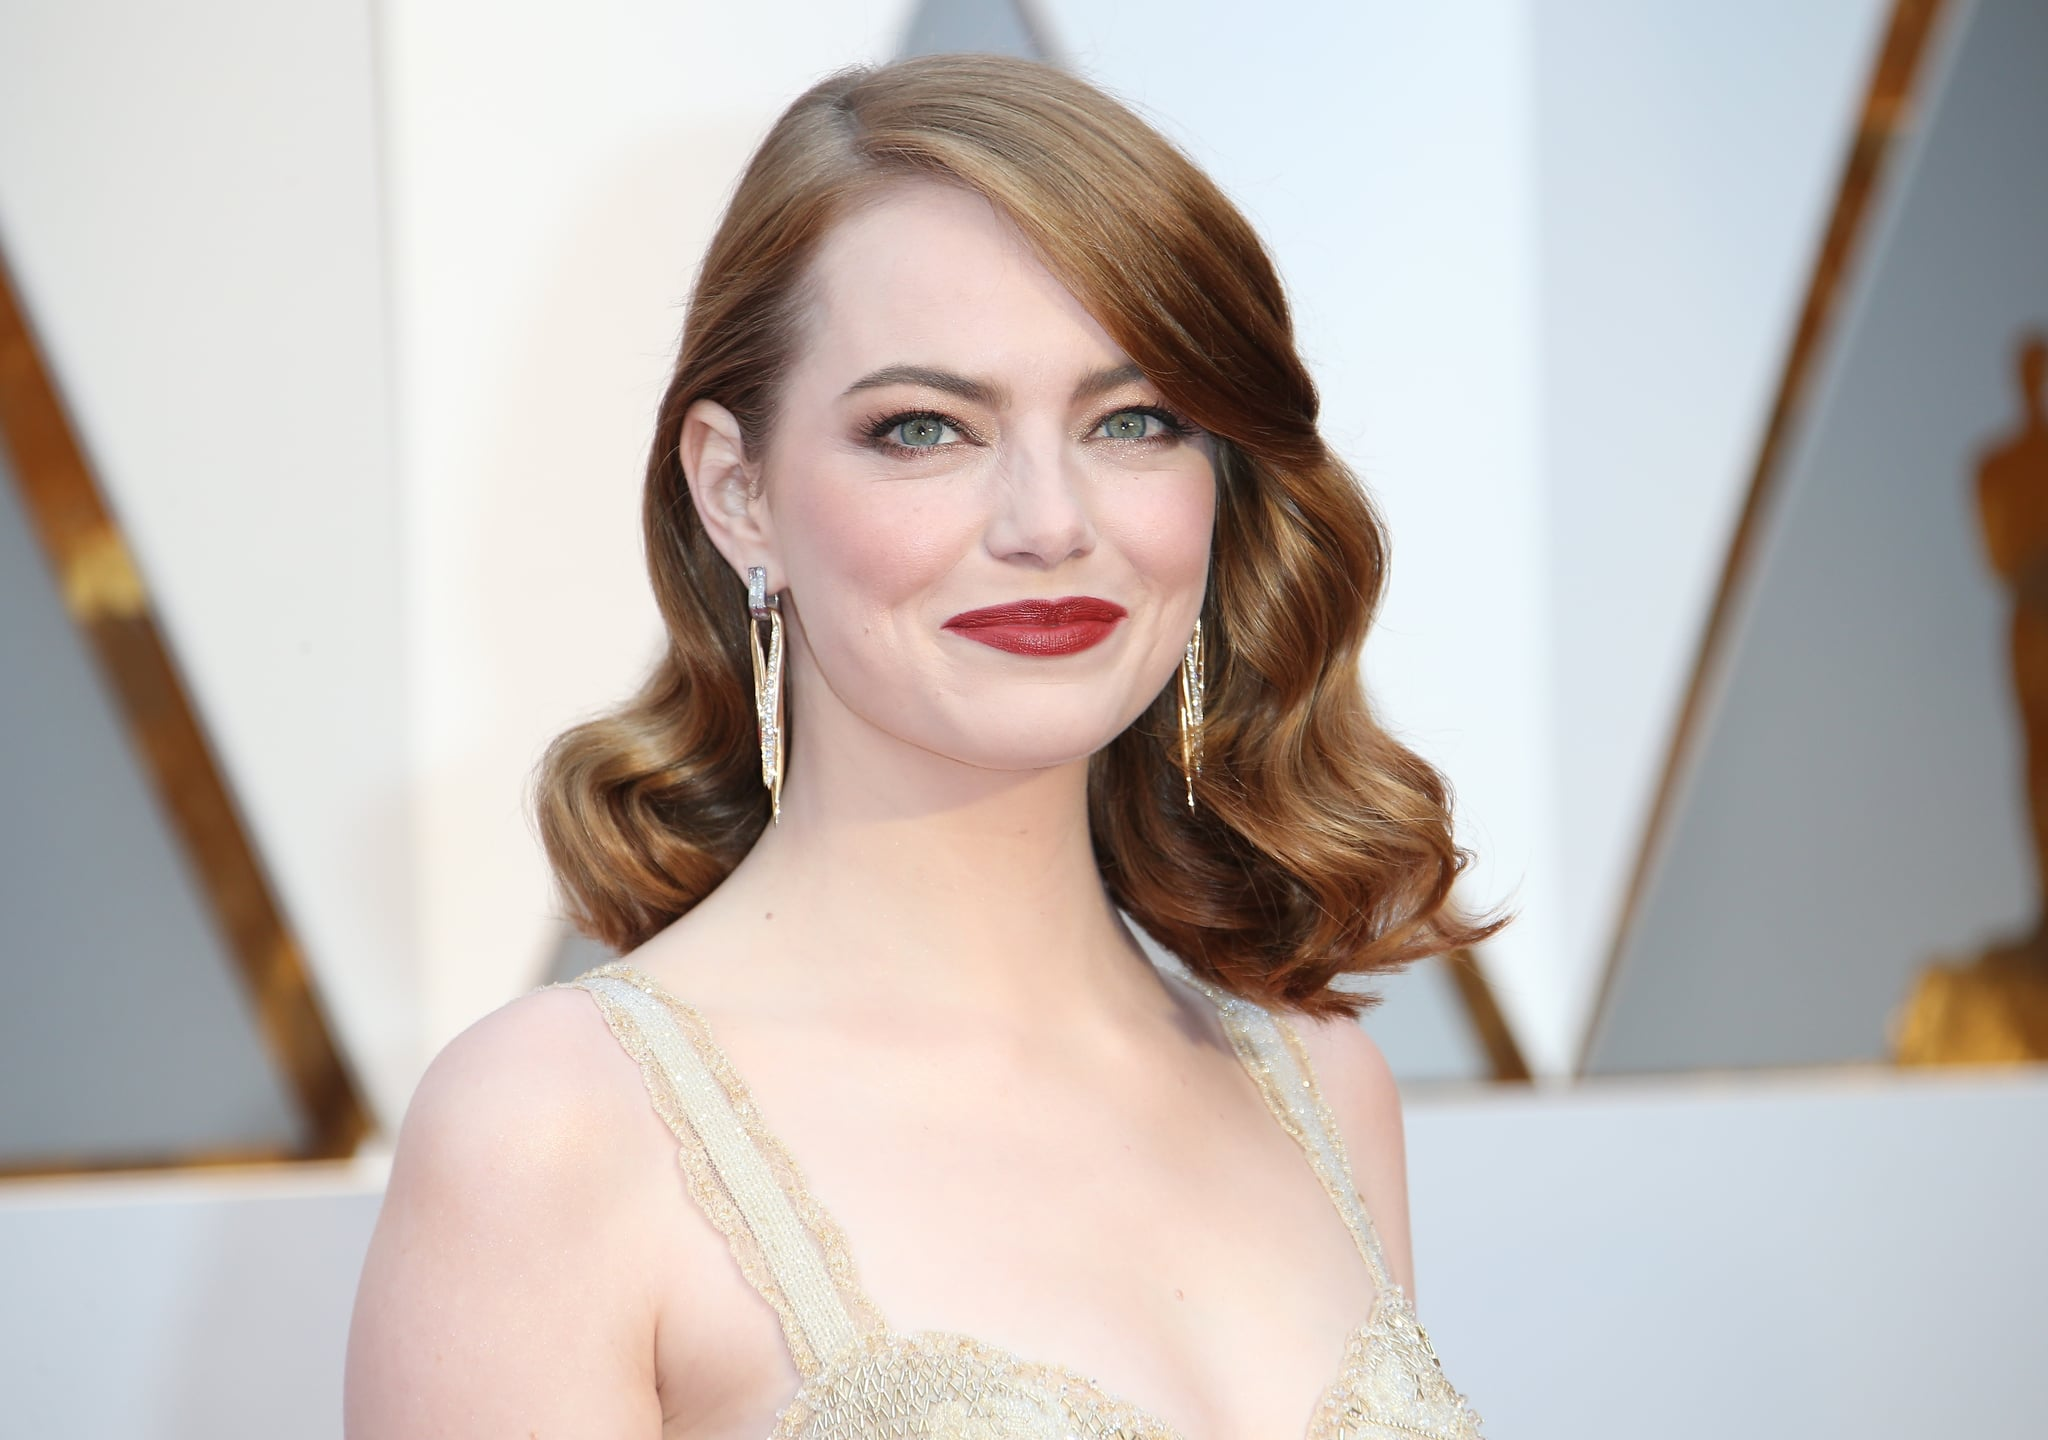 Disney's Live-Action Cruella de Vil Movie Starring Emma Stone Will Arrive in 2021